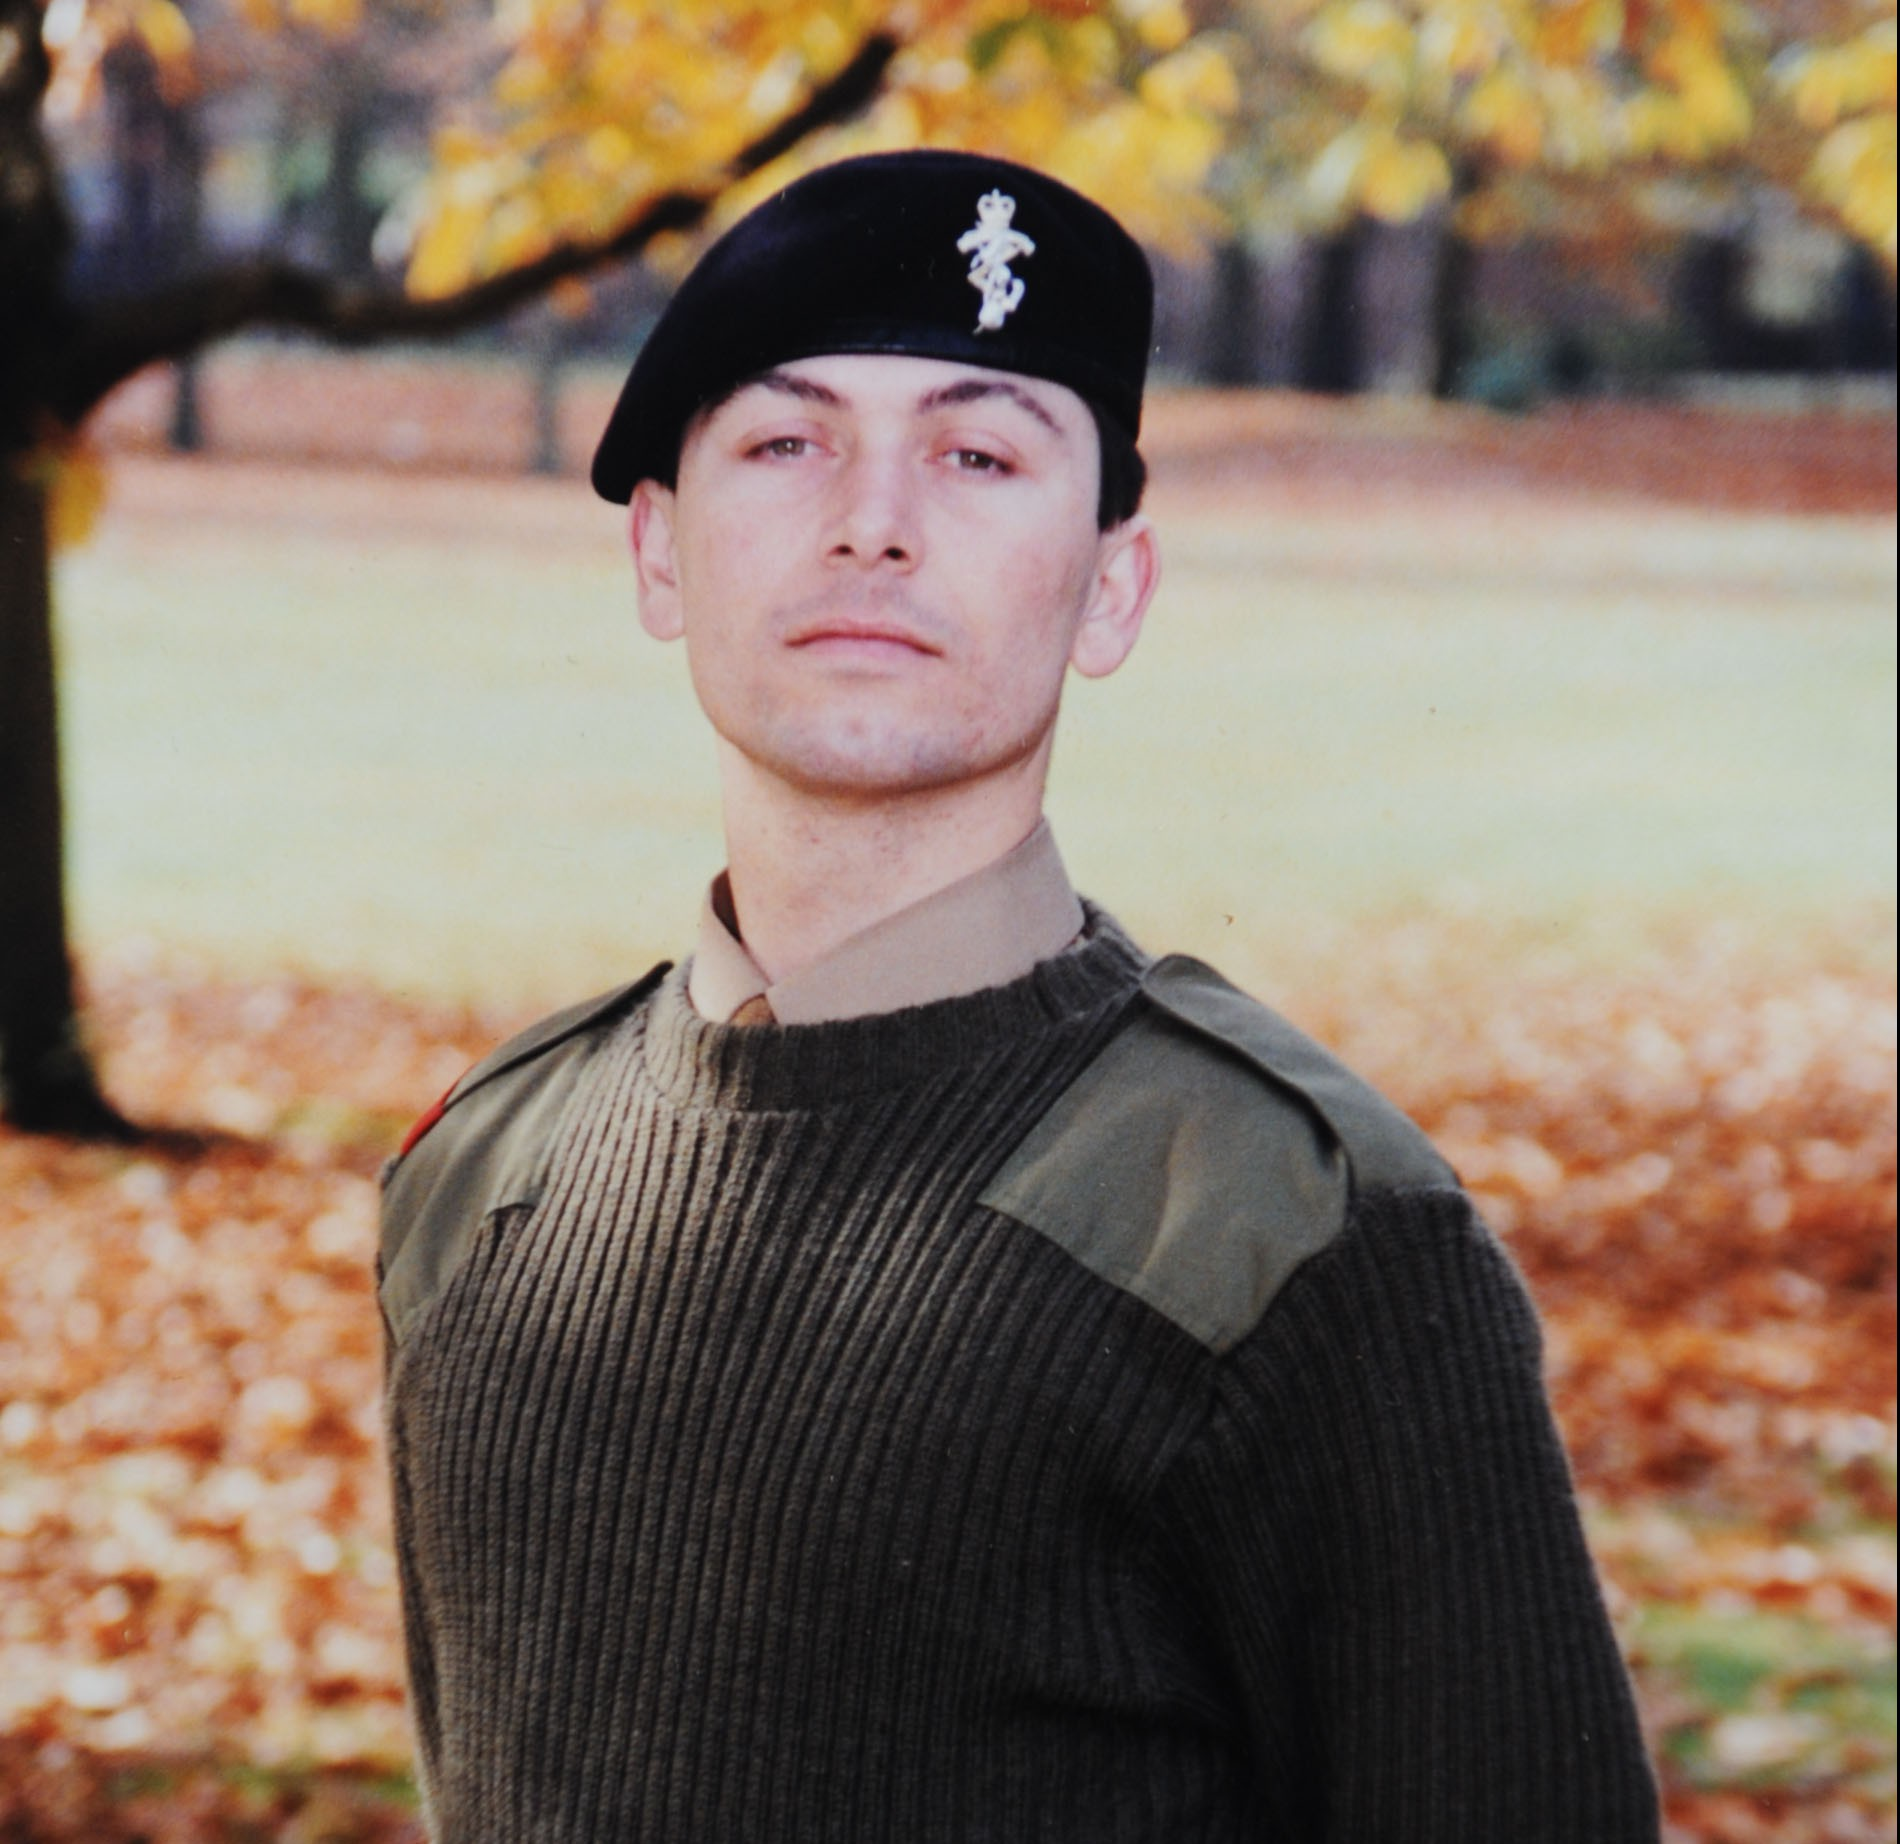 Iraq war veteran made redundant only 72 hours before qualifying for full pension